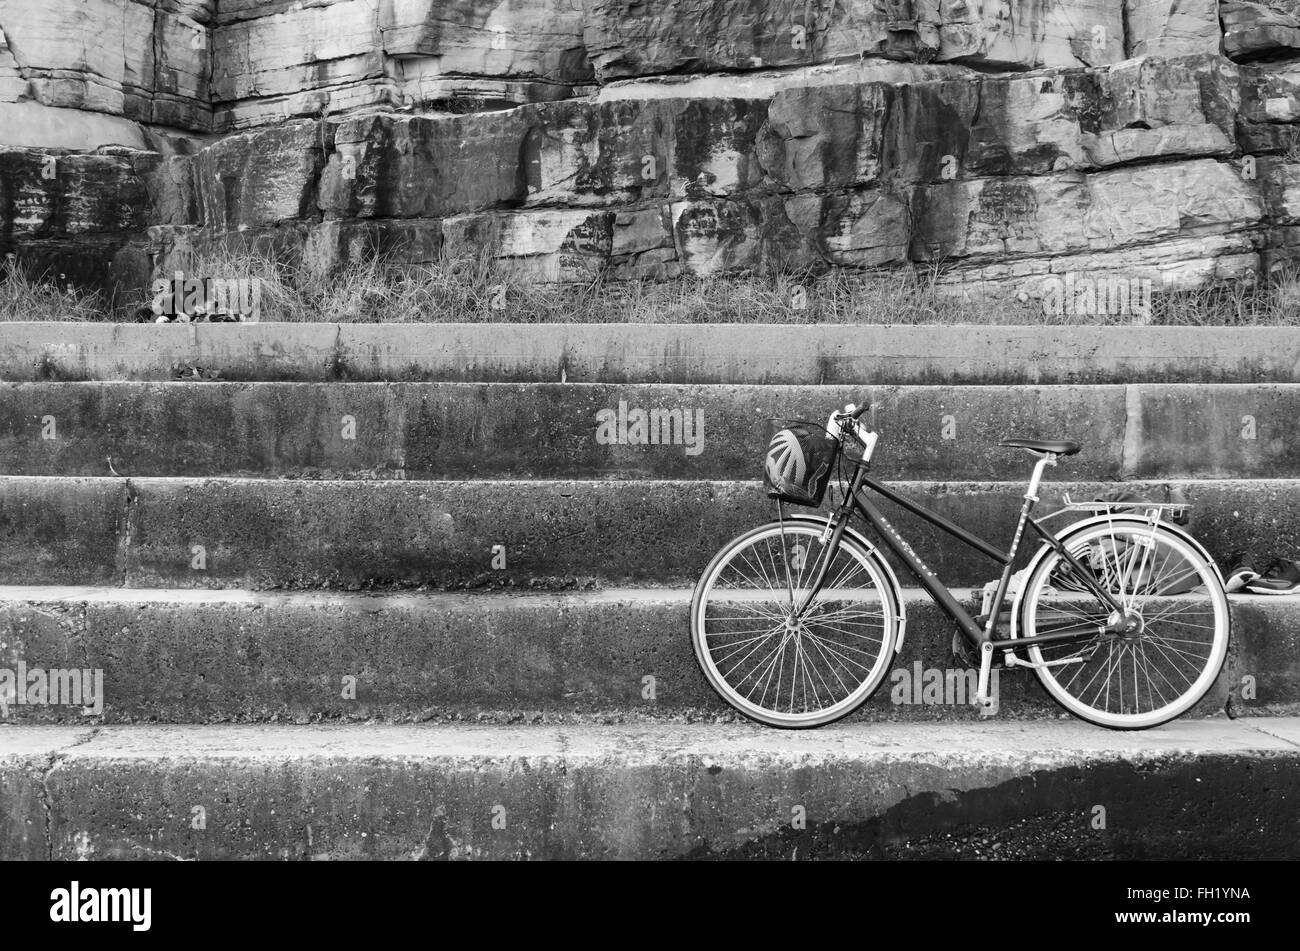 A bicycle parked and a dog tied up waiting for its owner to return. - Stock Image